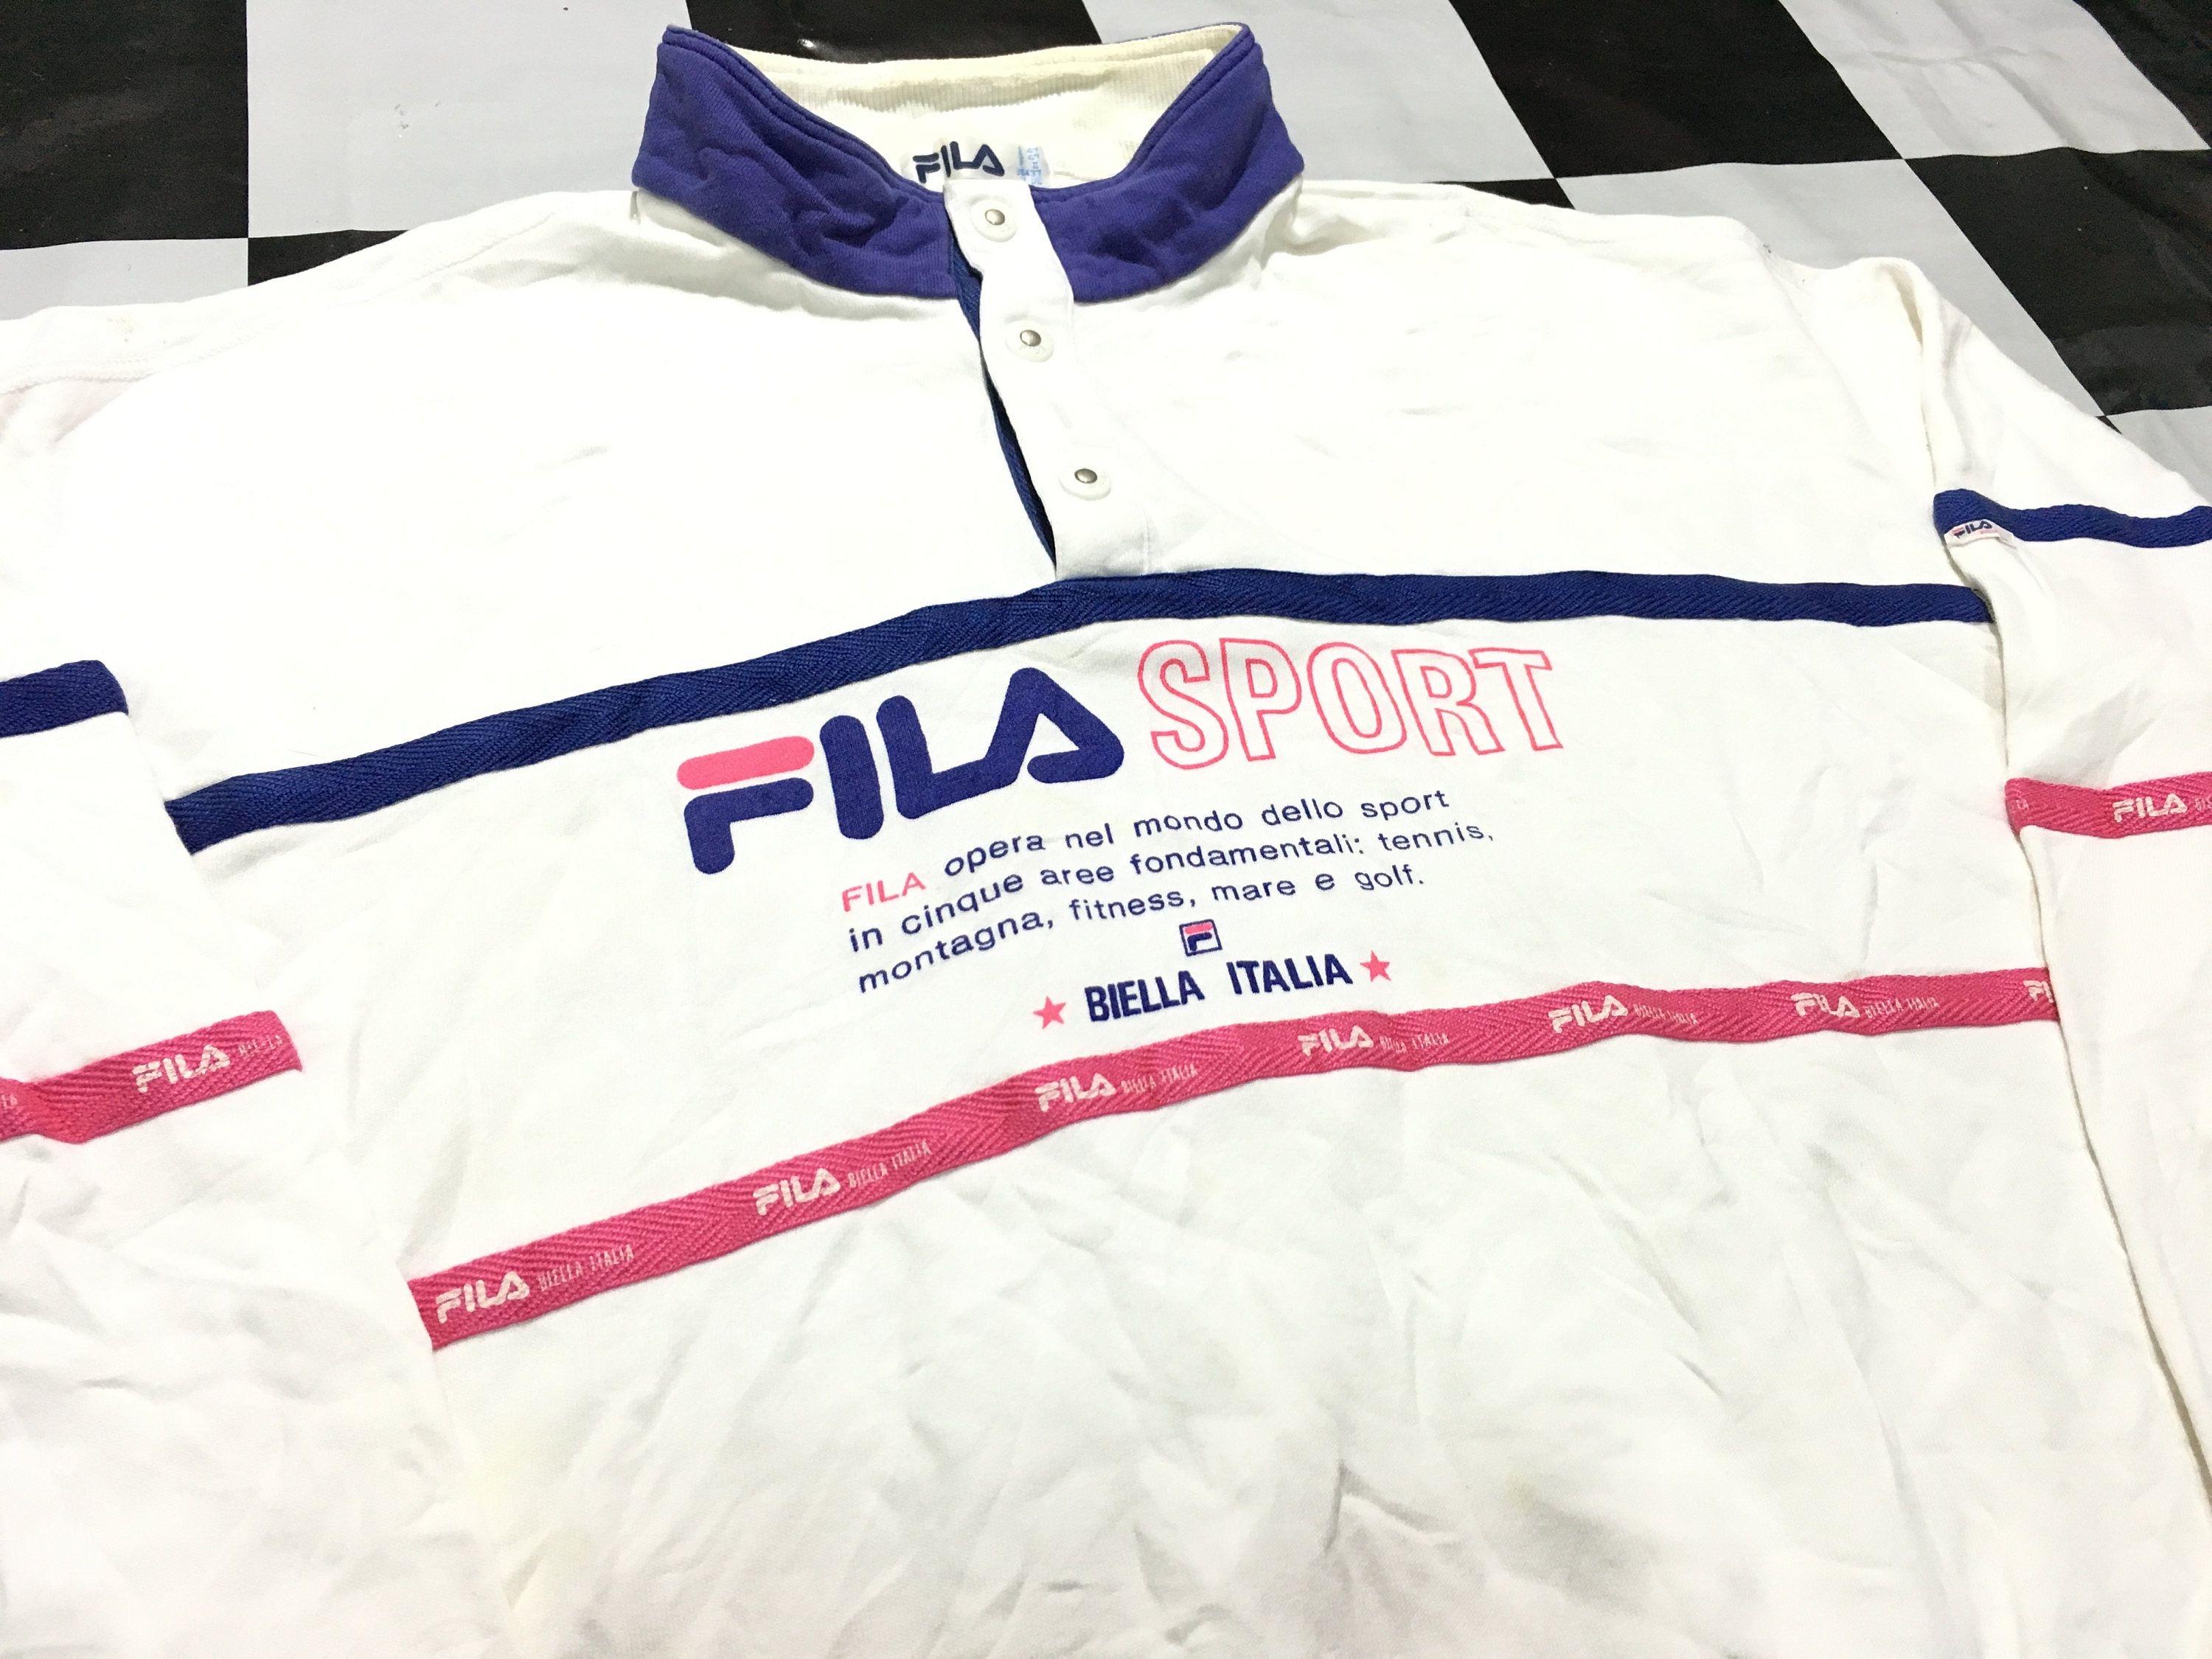 eee090cc89b2 Vintage Fila sport sweater half button up big logo striped spell out Size L  Fila biella italia by AlivevintageShop on Etsy